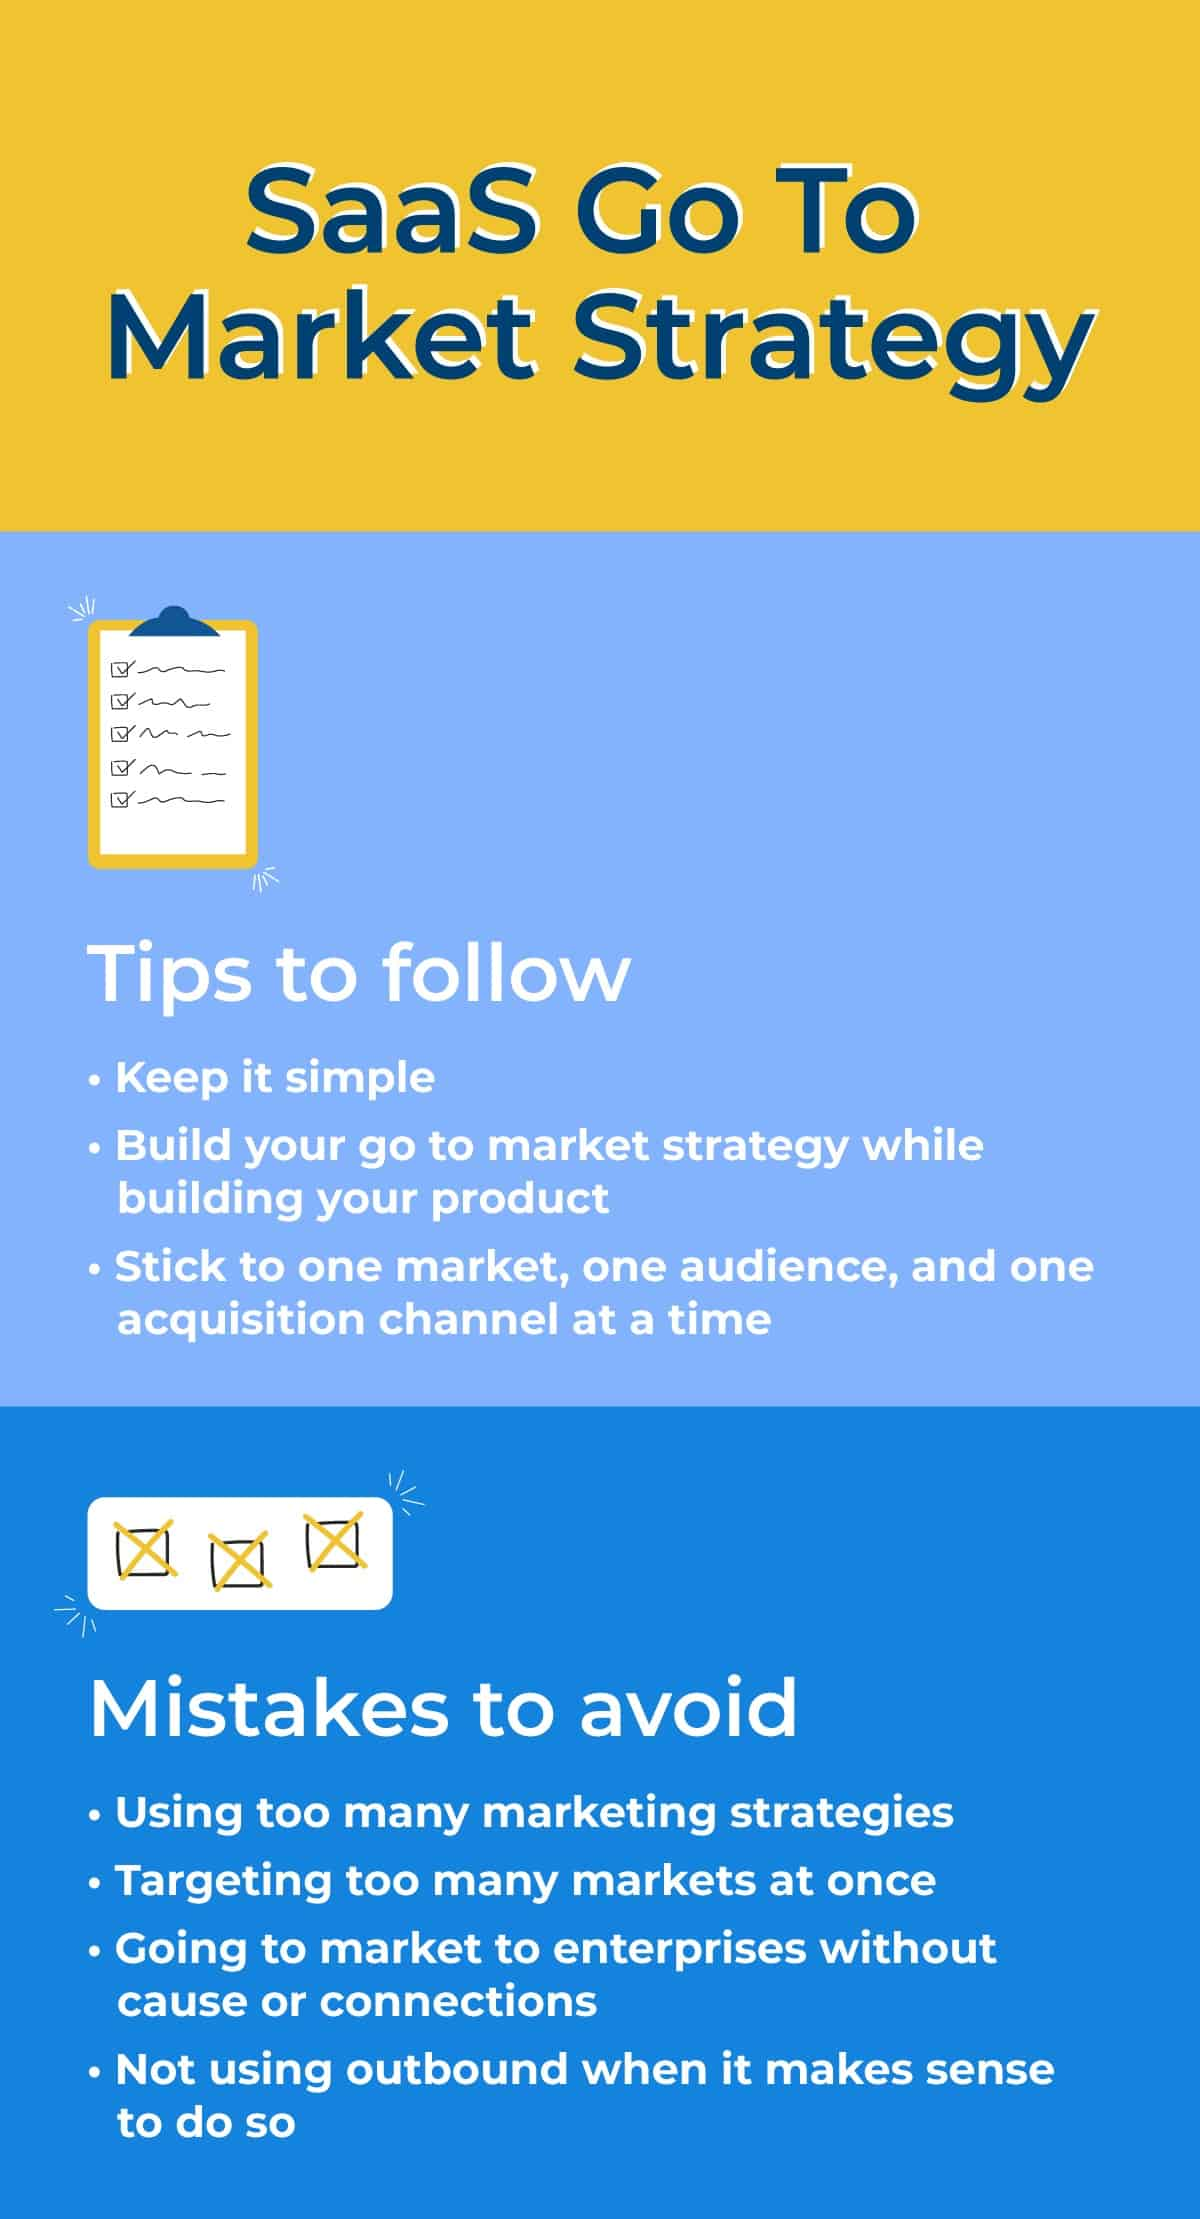 DevSquad_Infographic_SaaS-Go-to-Market-Strategy-Tips-Examples_2_v1